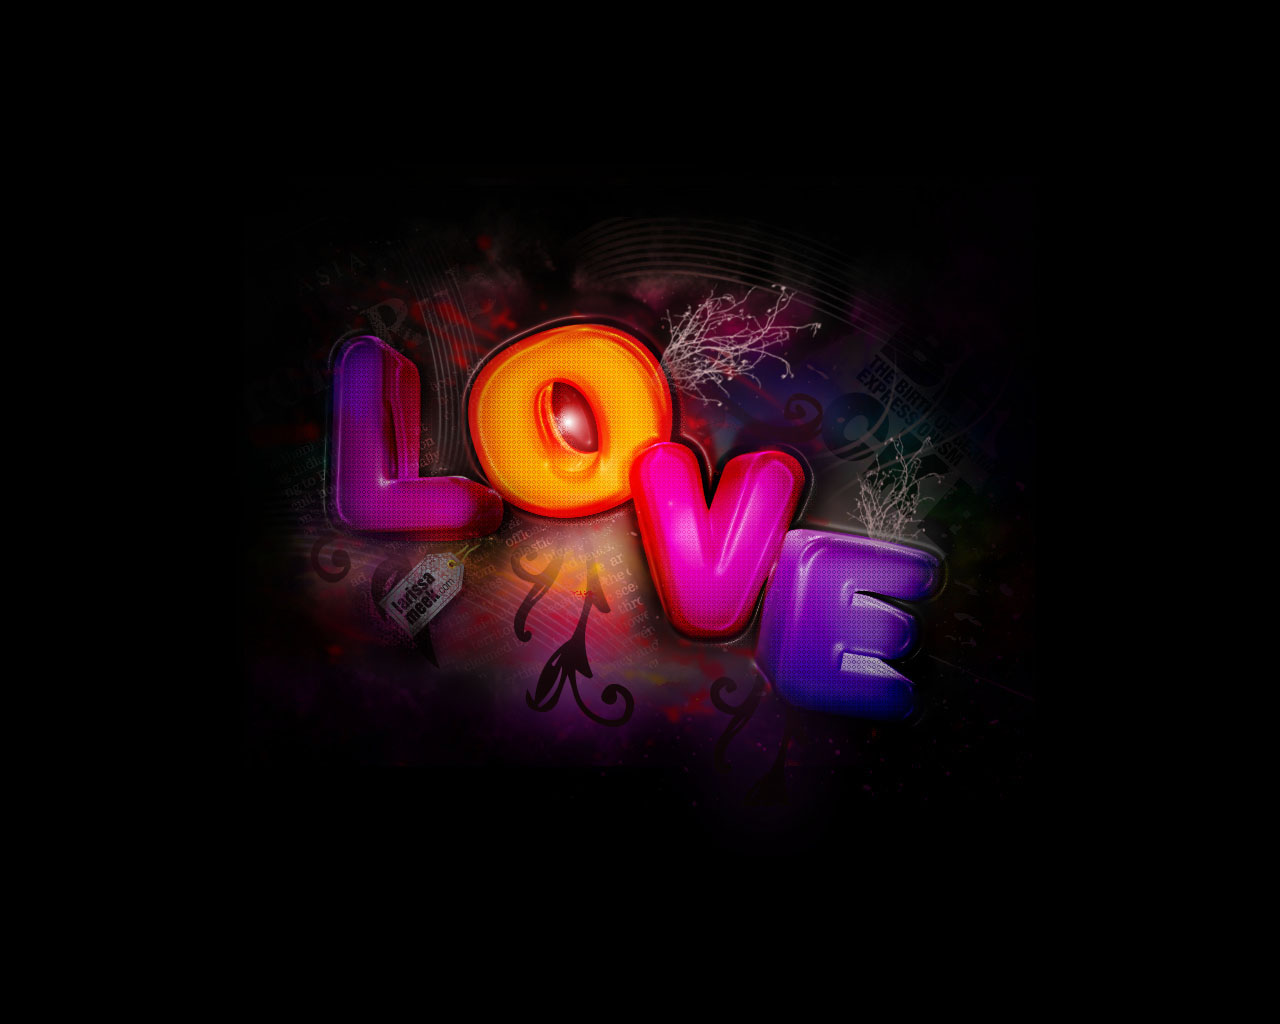 Free Download Love Wallpapers Hd Hd Wallpapers Backgrounds Photos